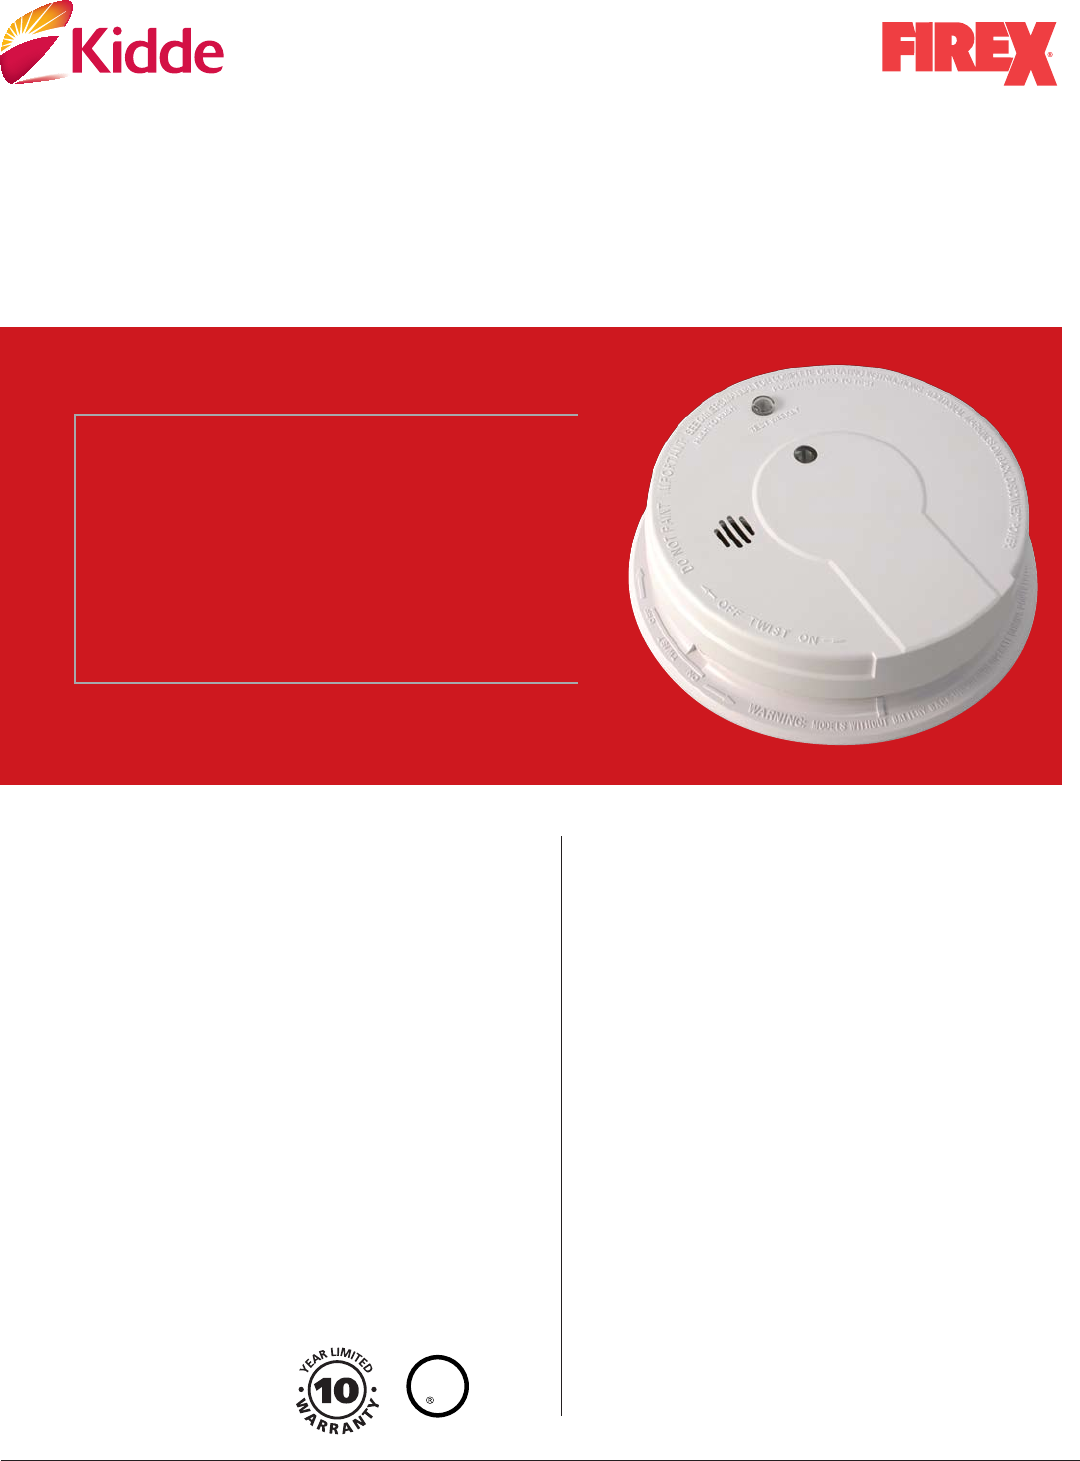 Kidde Smoke Alarm I12020 User Guide Manualsonlinecom Firex Wiring Diagram On 120v Ac Wire In